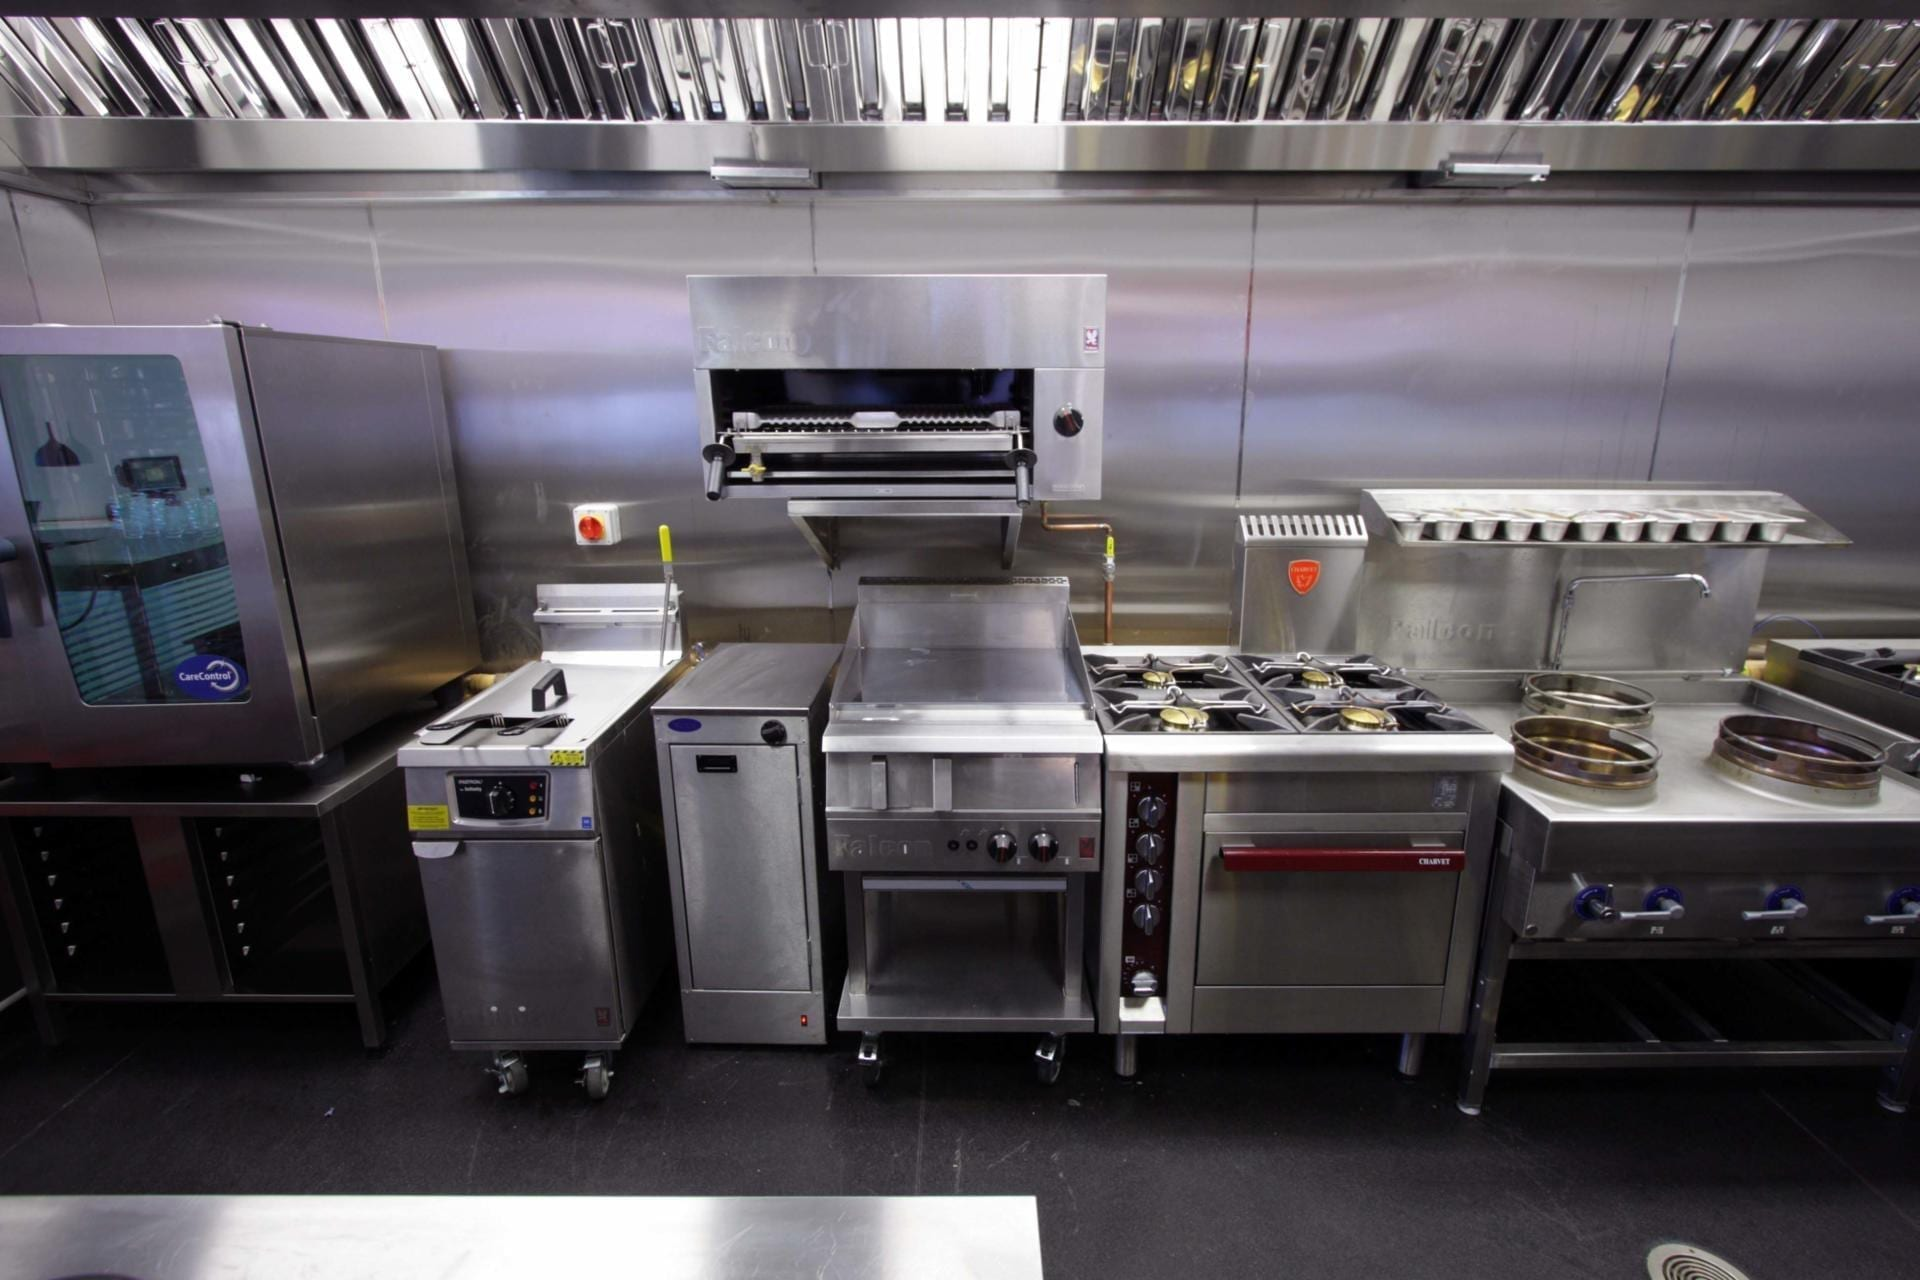 Oojam-Hemel-Hempstead-Indian-restaurant-and-kitchenFabrication-Stainless-Steel-Commercial-Kitchen-spacecatering_1